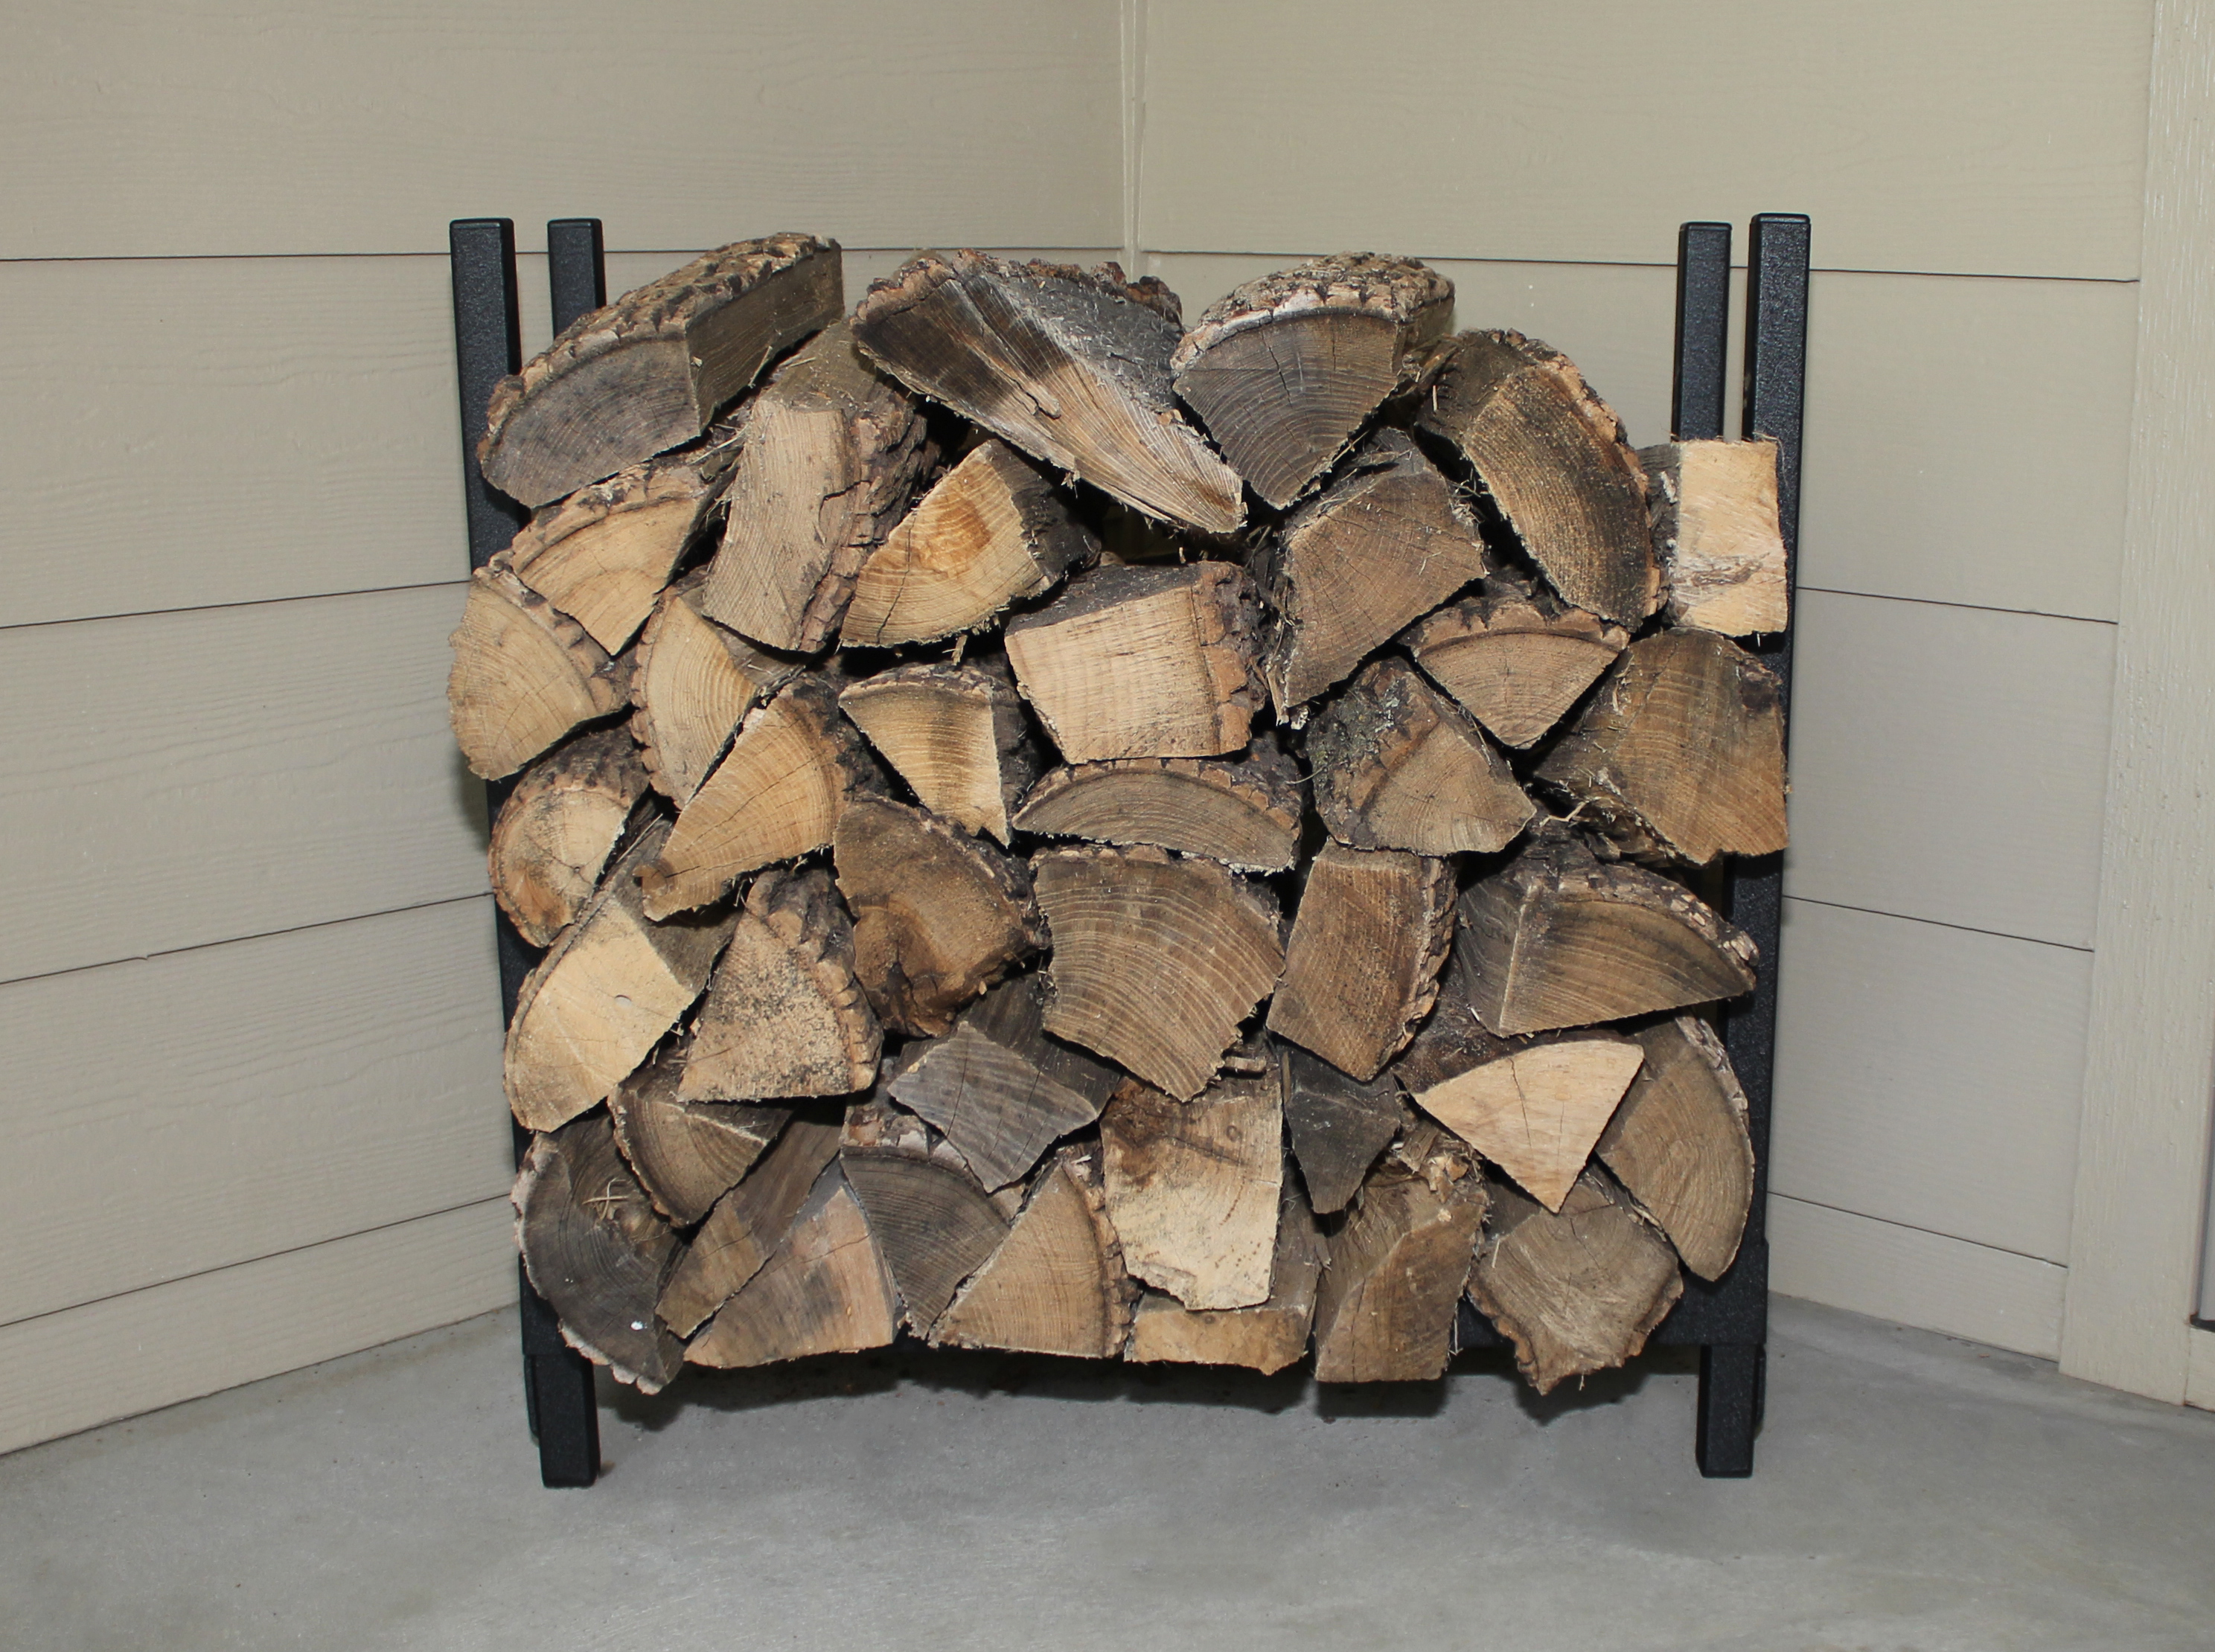 or build ideas outdoor storage rack welly homemade appealing racks designs diy breathtaking wooden shoe for wood firewood cabin holder plans threshold tips